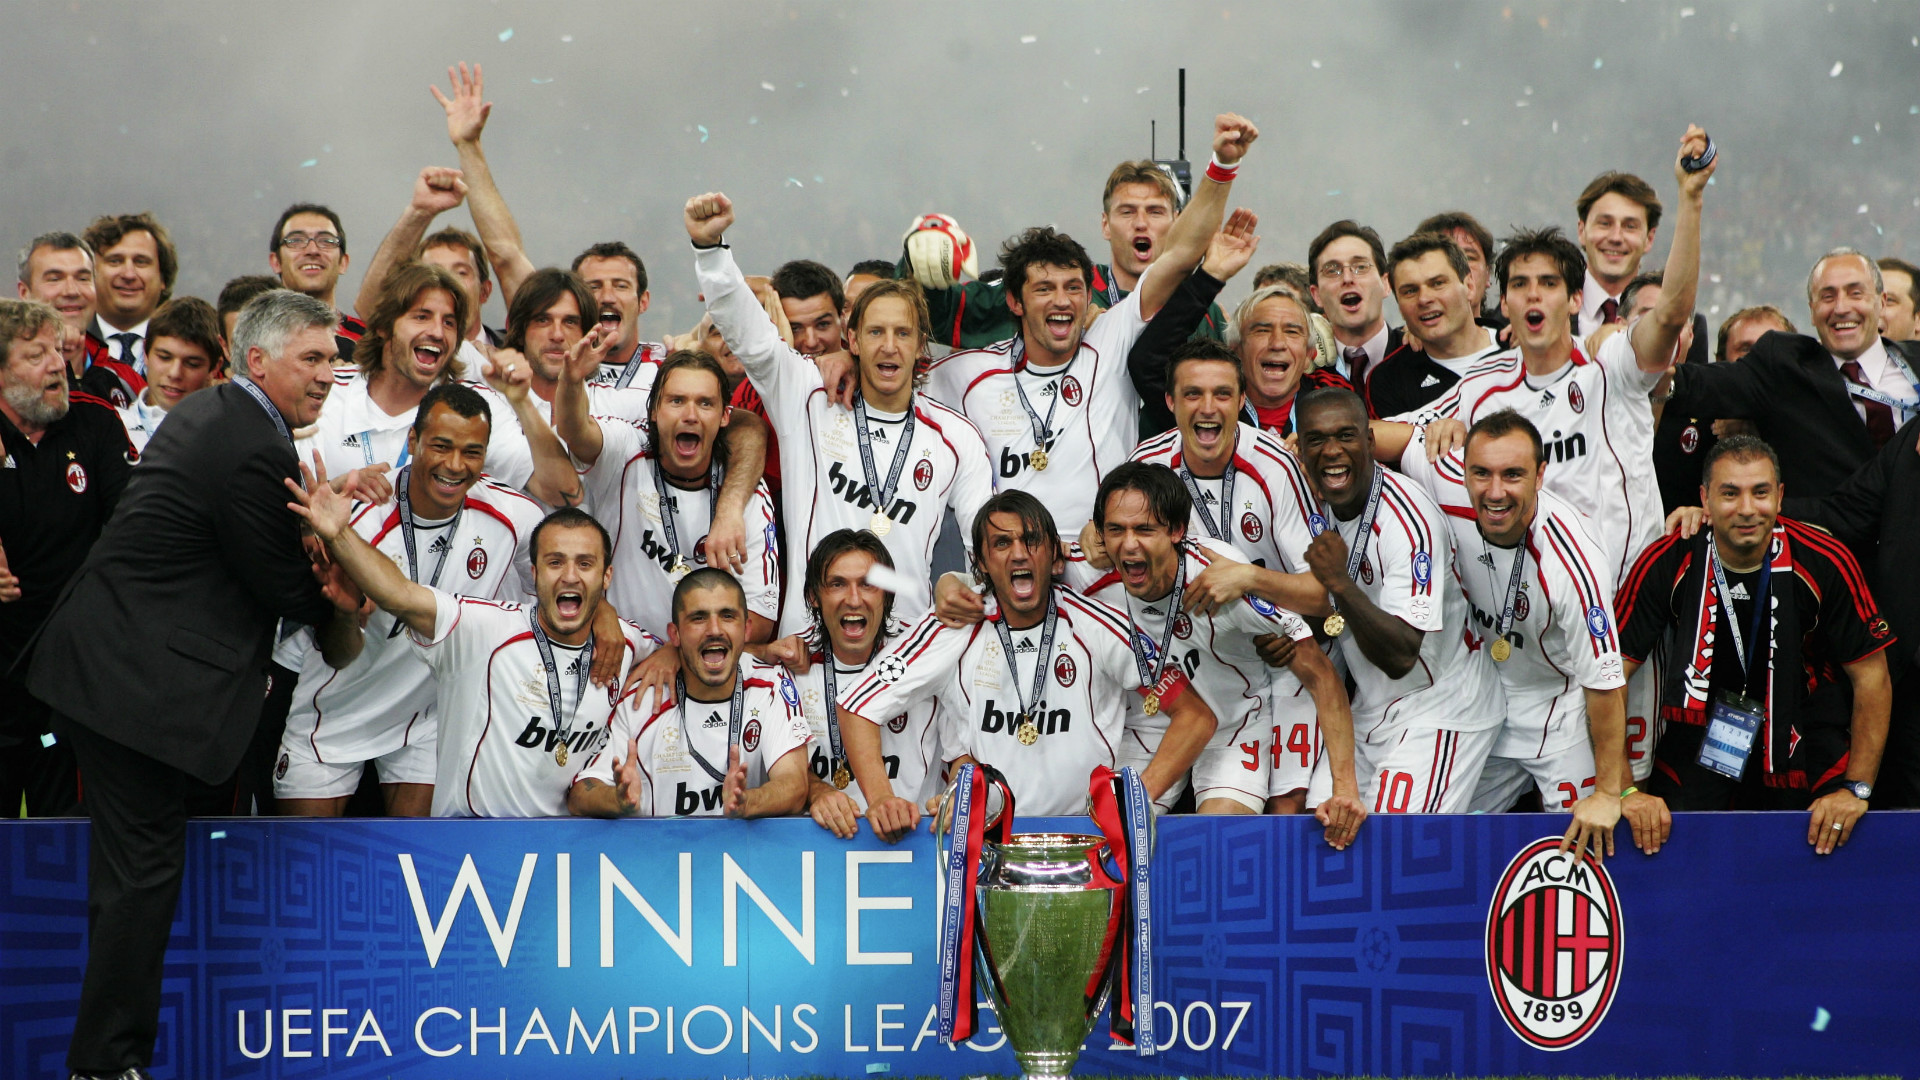 Milan Champions League 2007